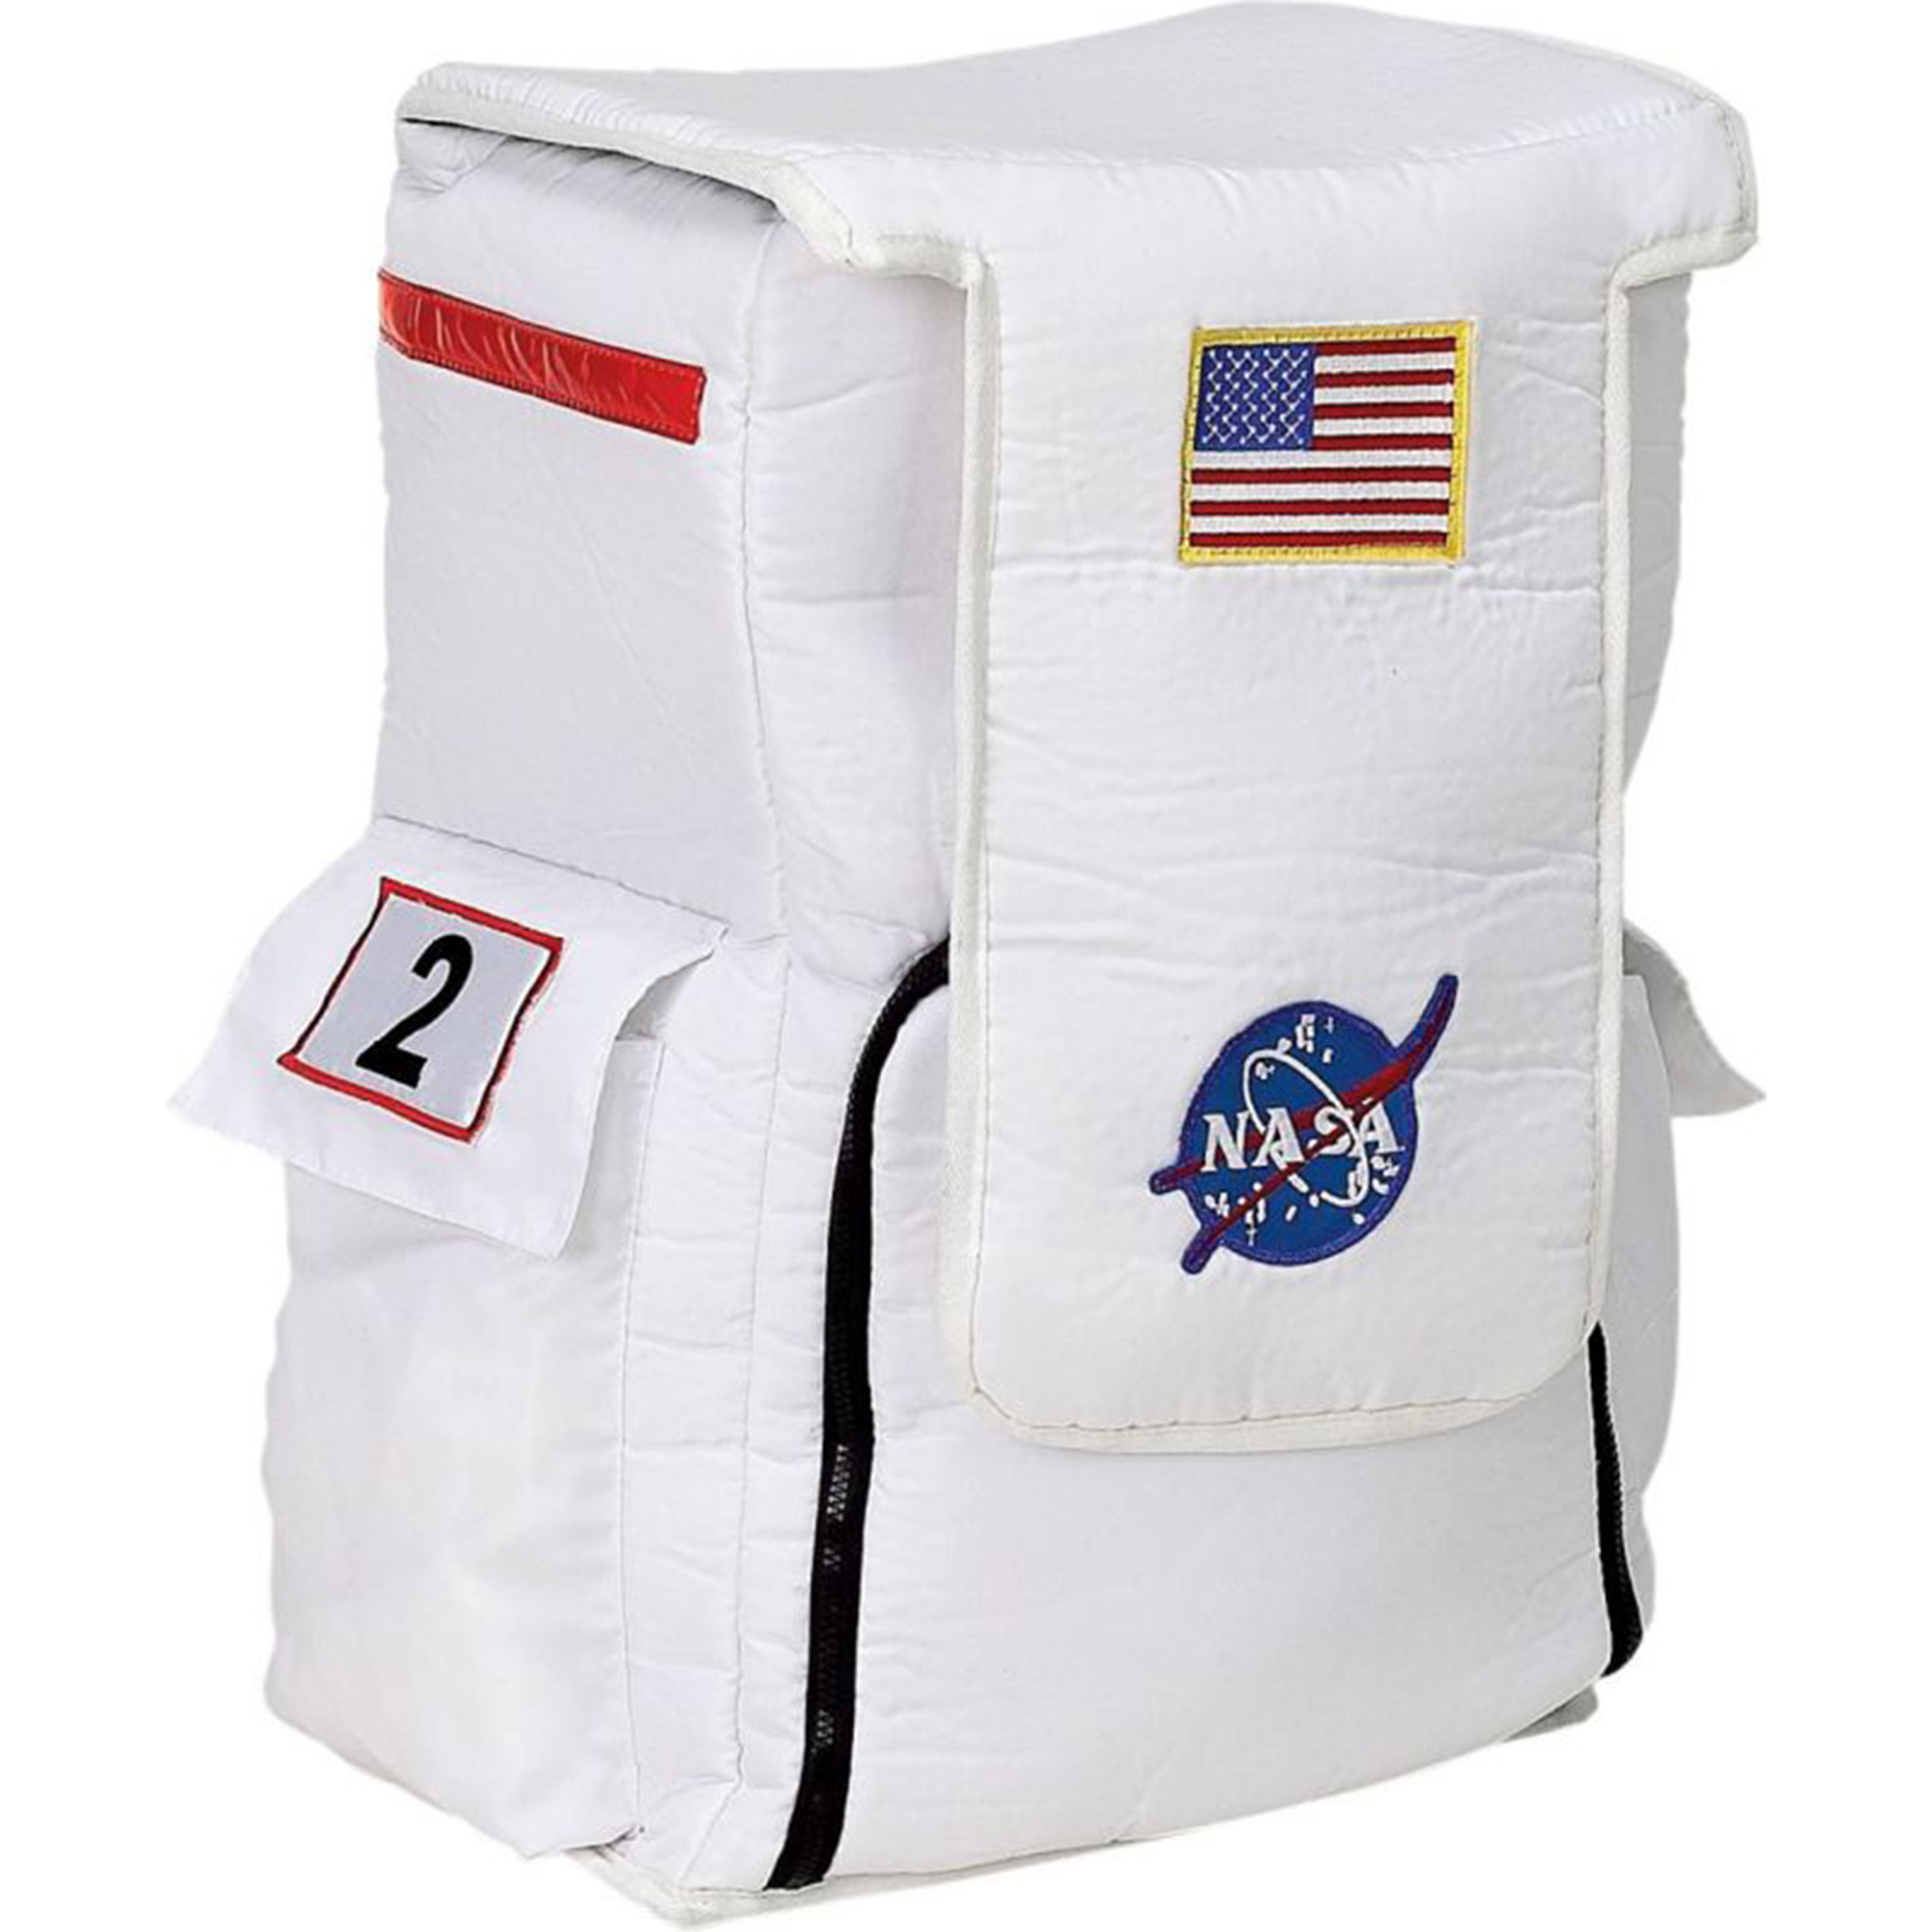 Morris Costumes Astronaut Backpack White Child Halloween Accessory